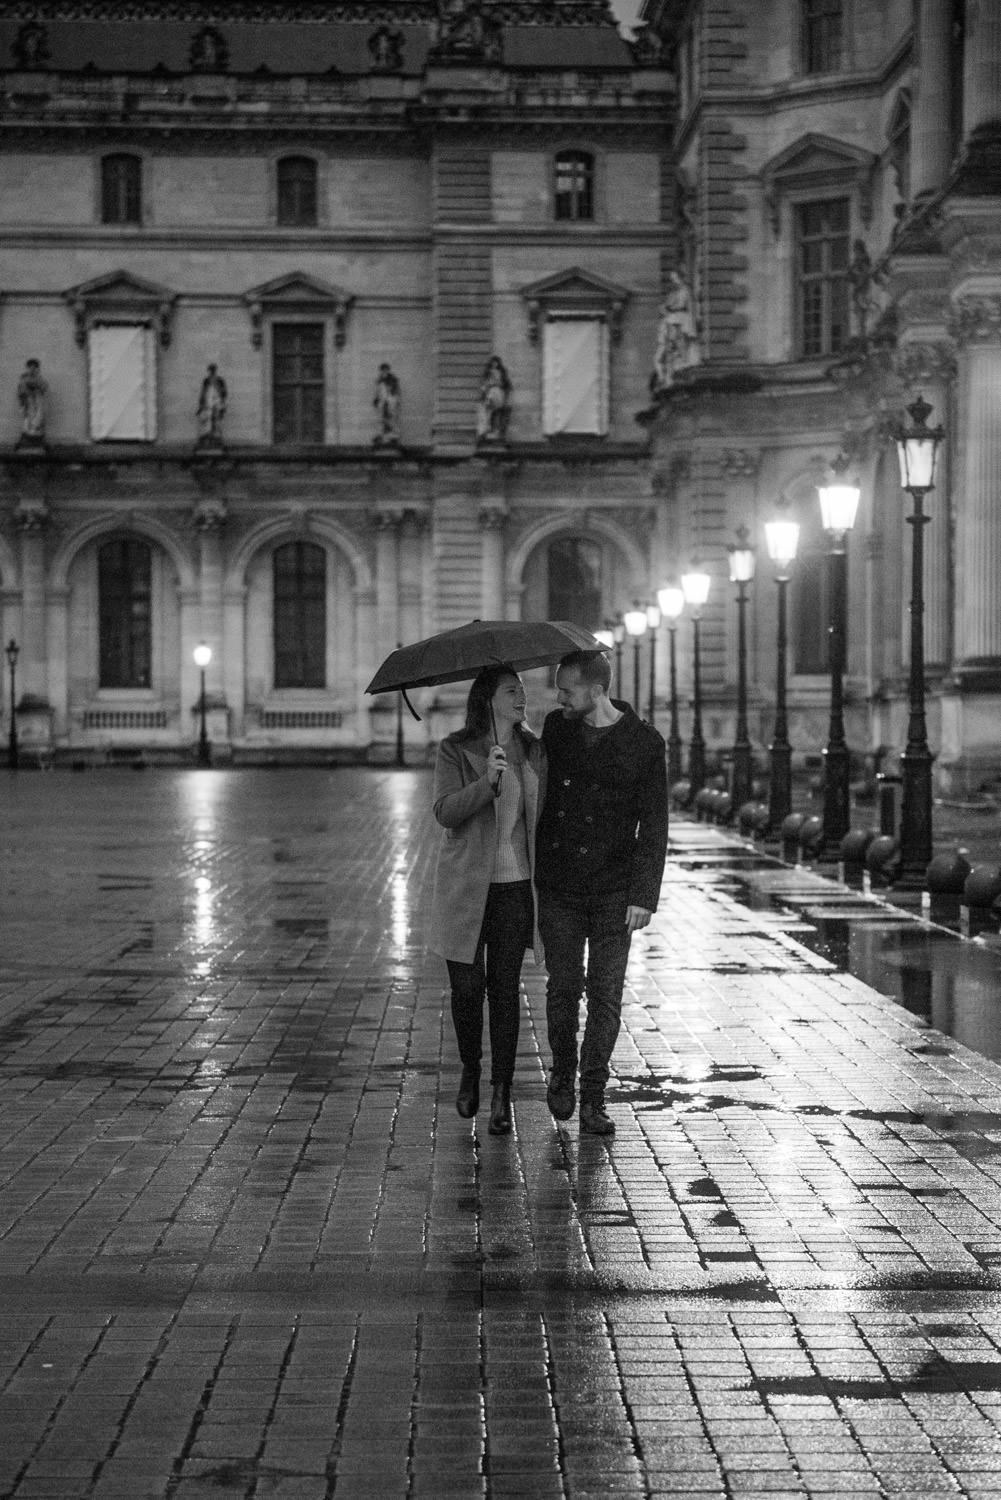 Place du Louvre, the scene for an engagement session at night